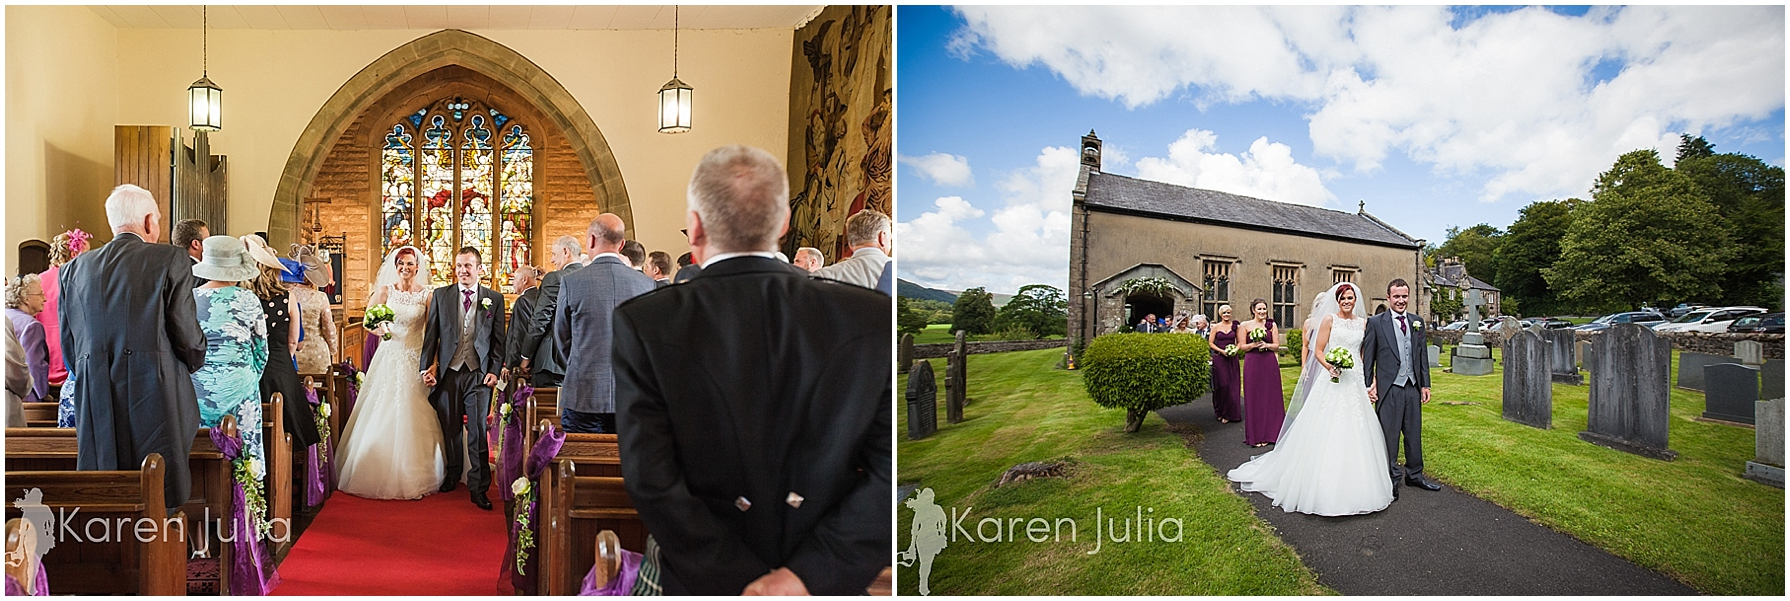 The-Inn-at-Whitewell-Wedding-Photography-08